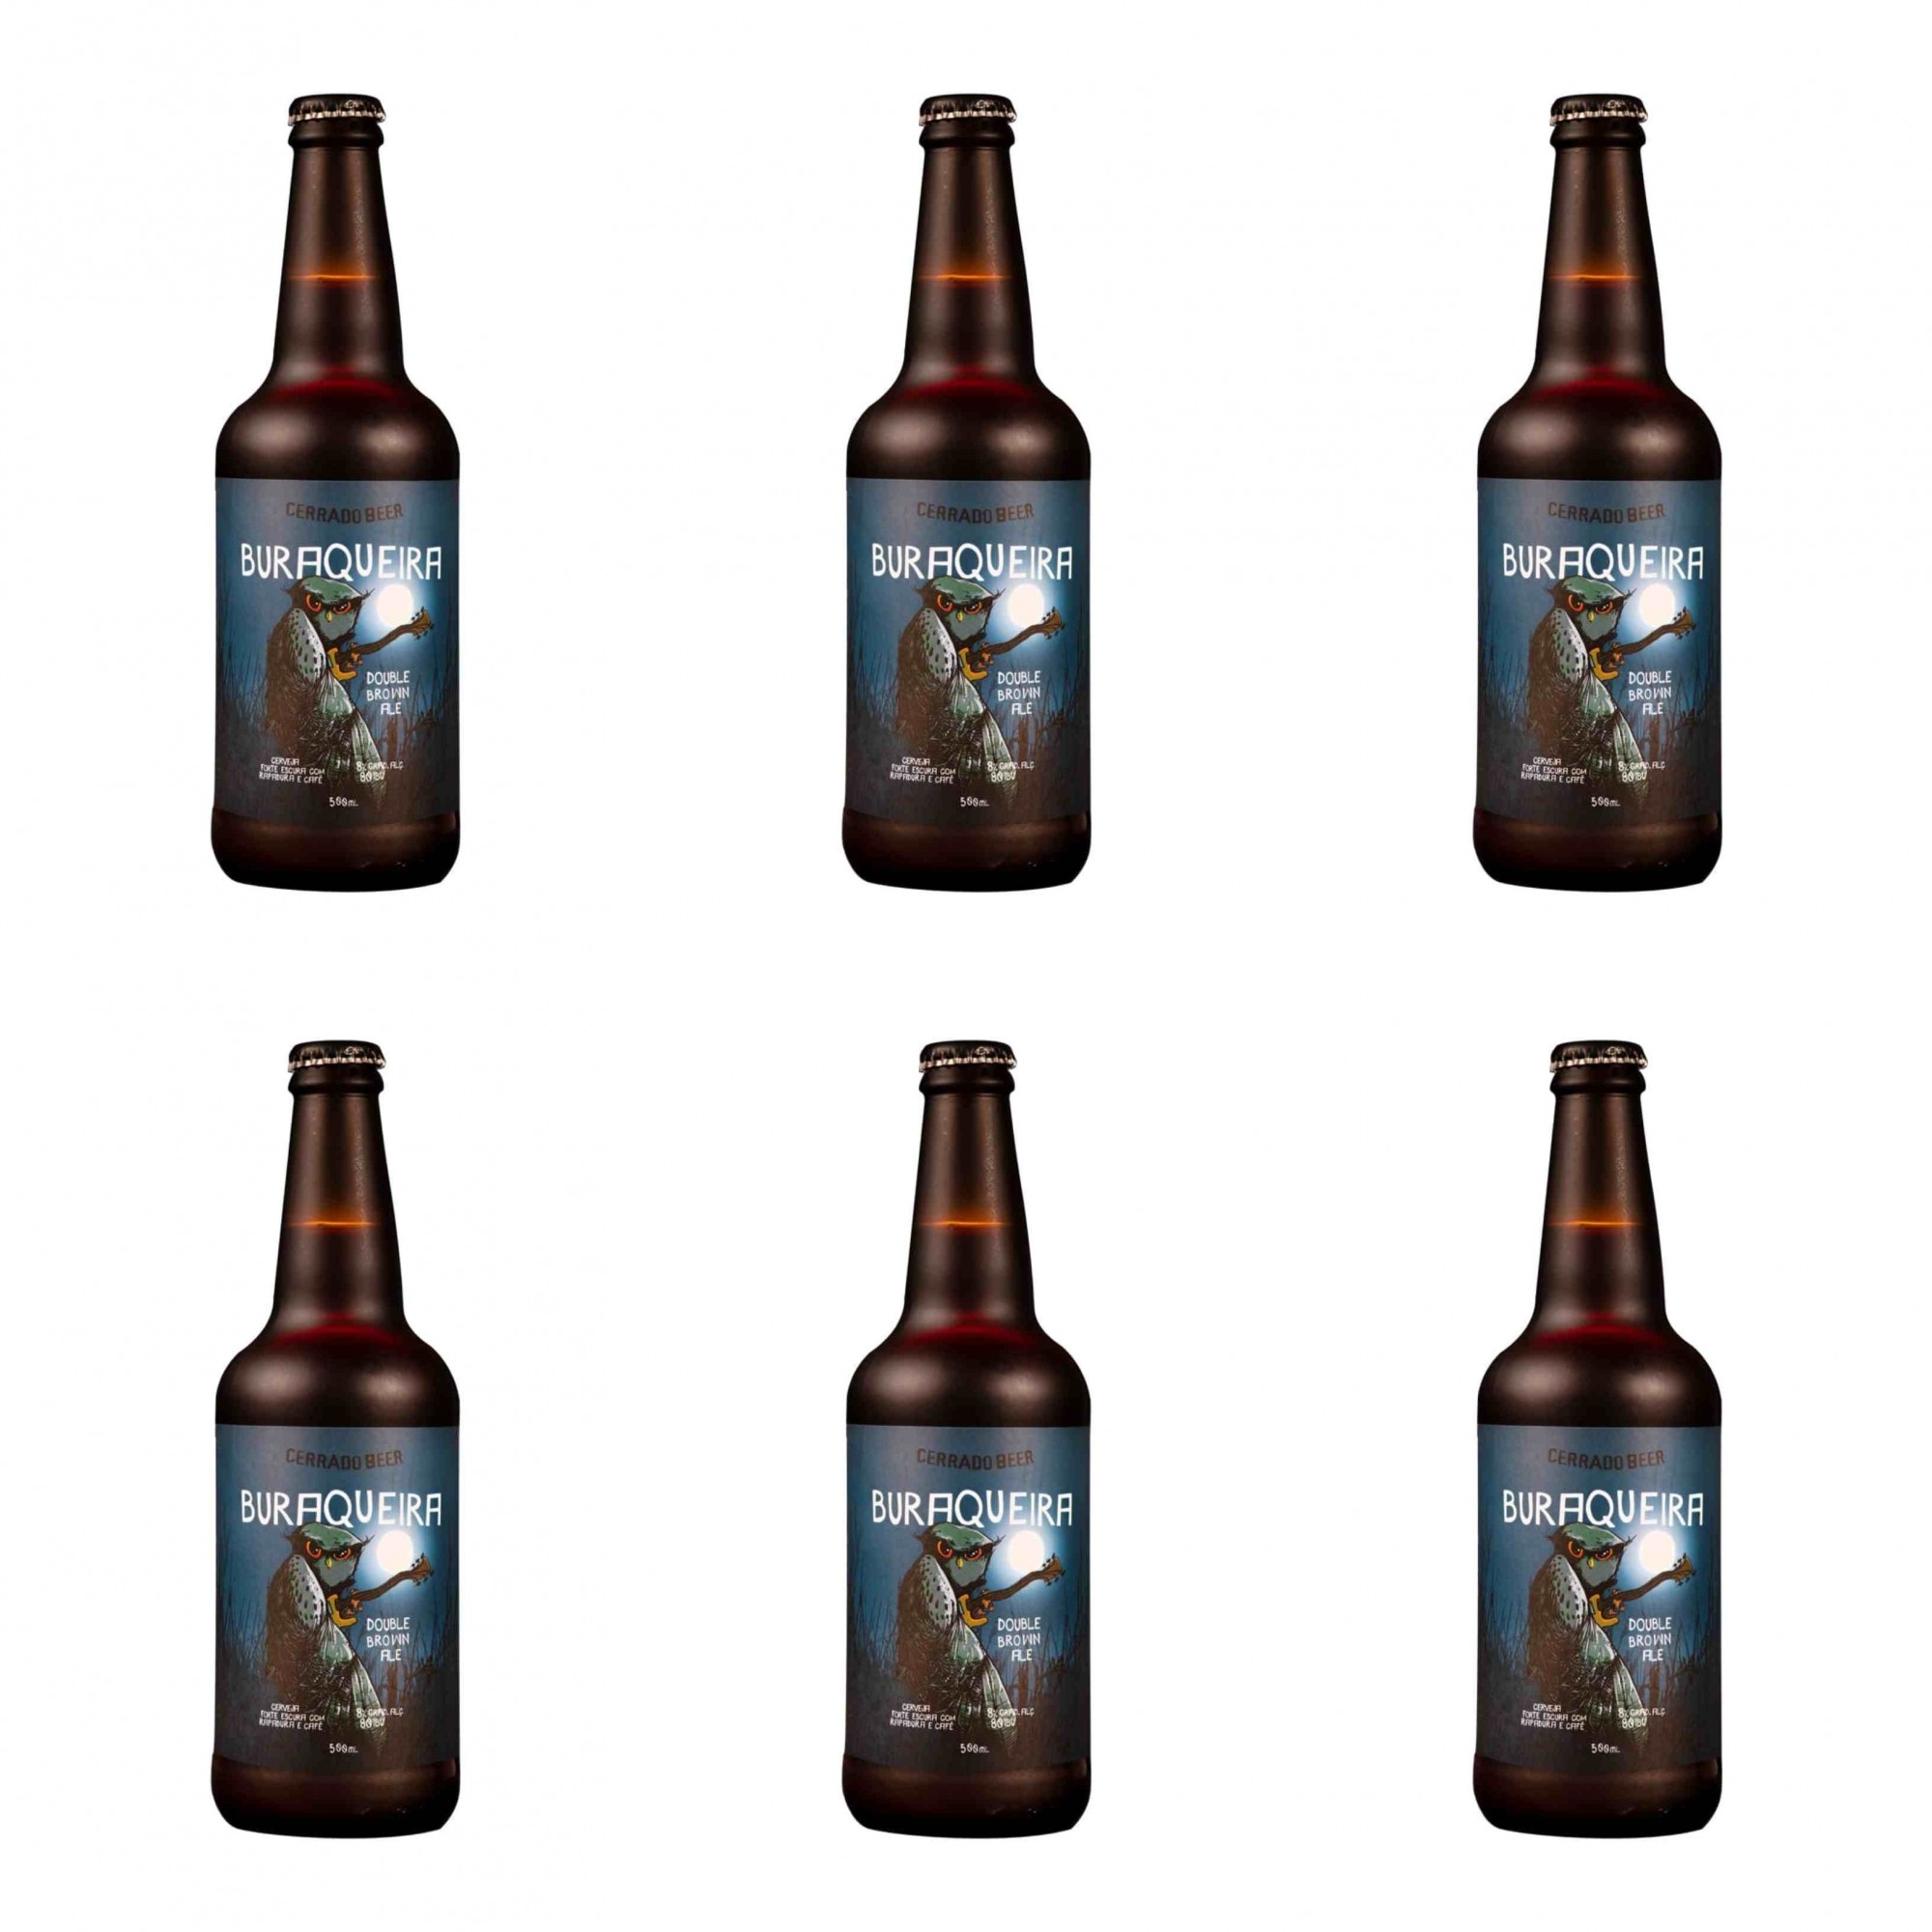 Kit Buraqueira Double Ipa Brown Ale com 6 Garrafas